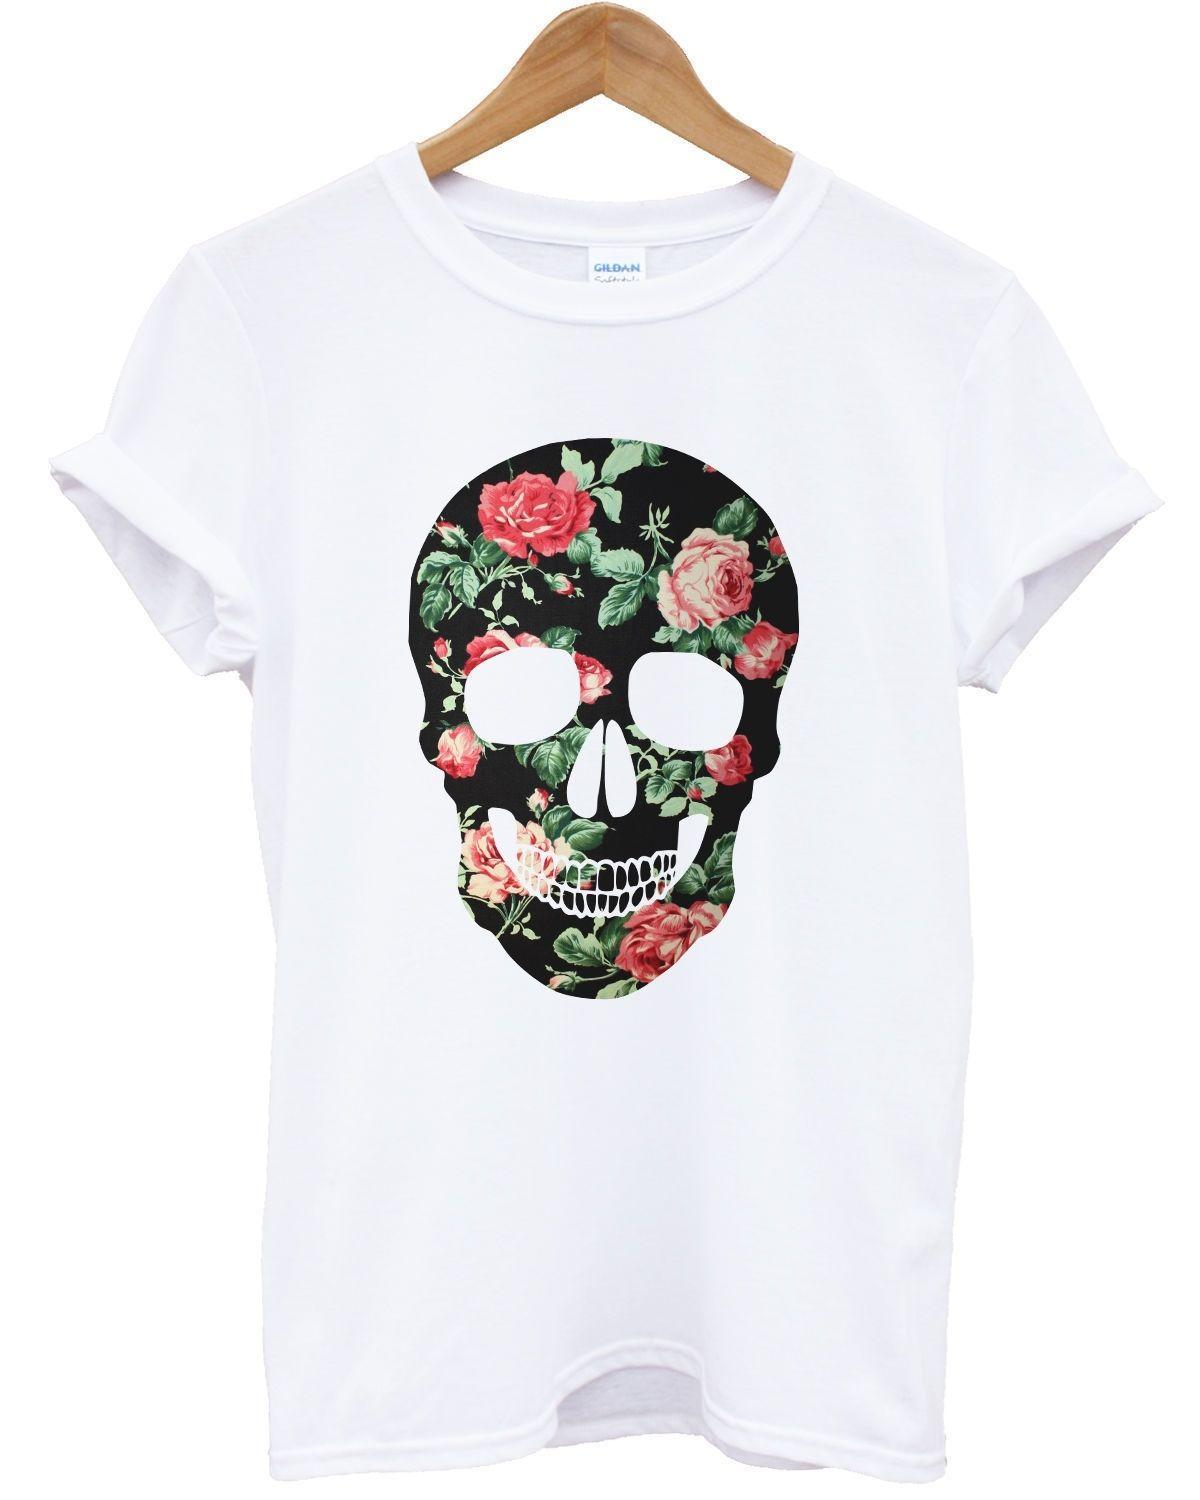 Floral Skull Coloured T Shirt Print Tumblr Indie Hipster Rose Women